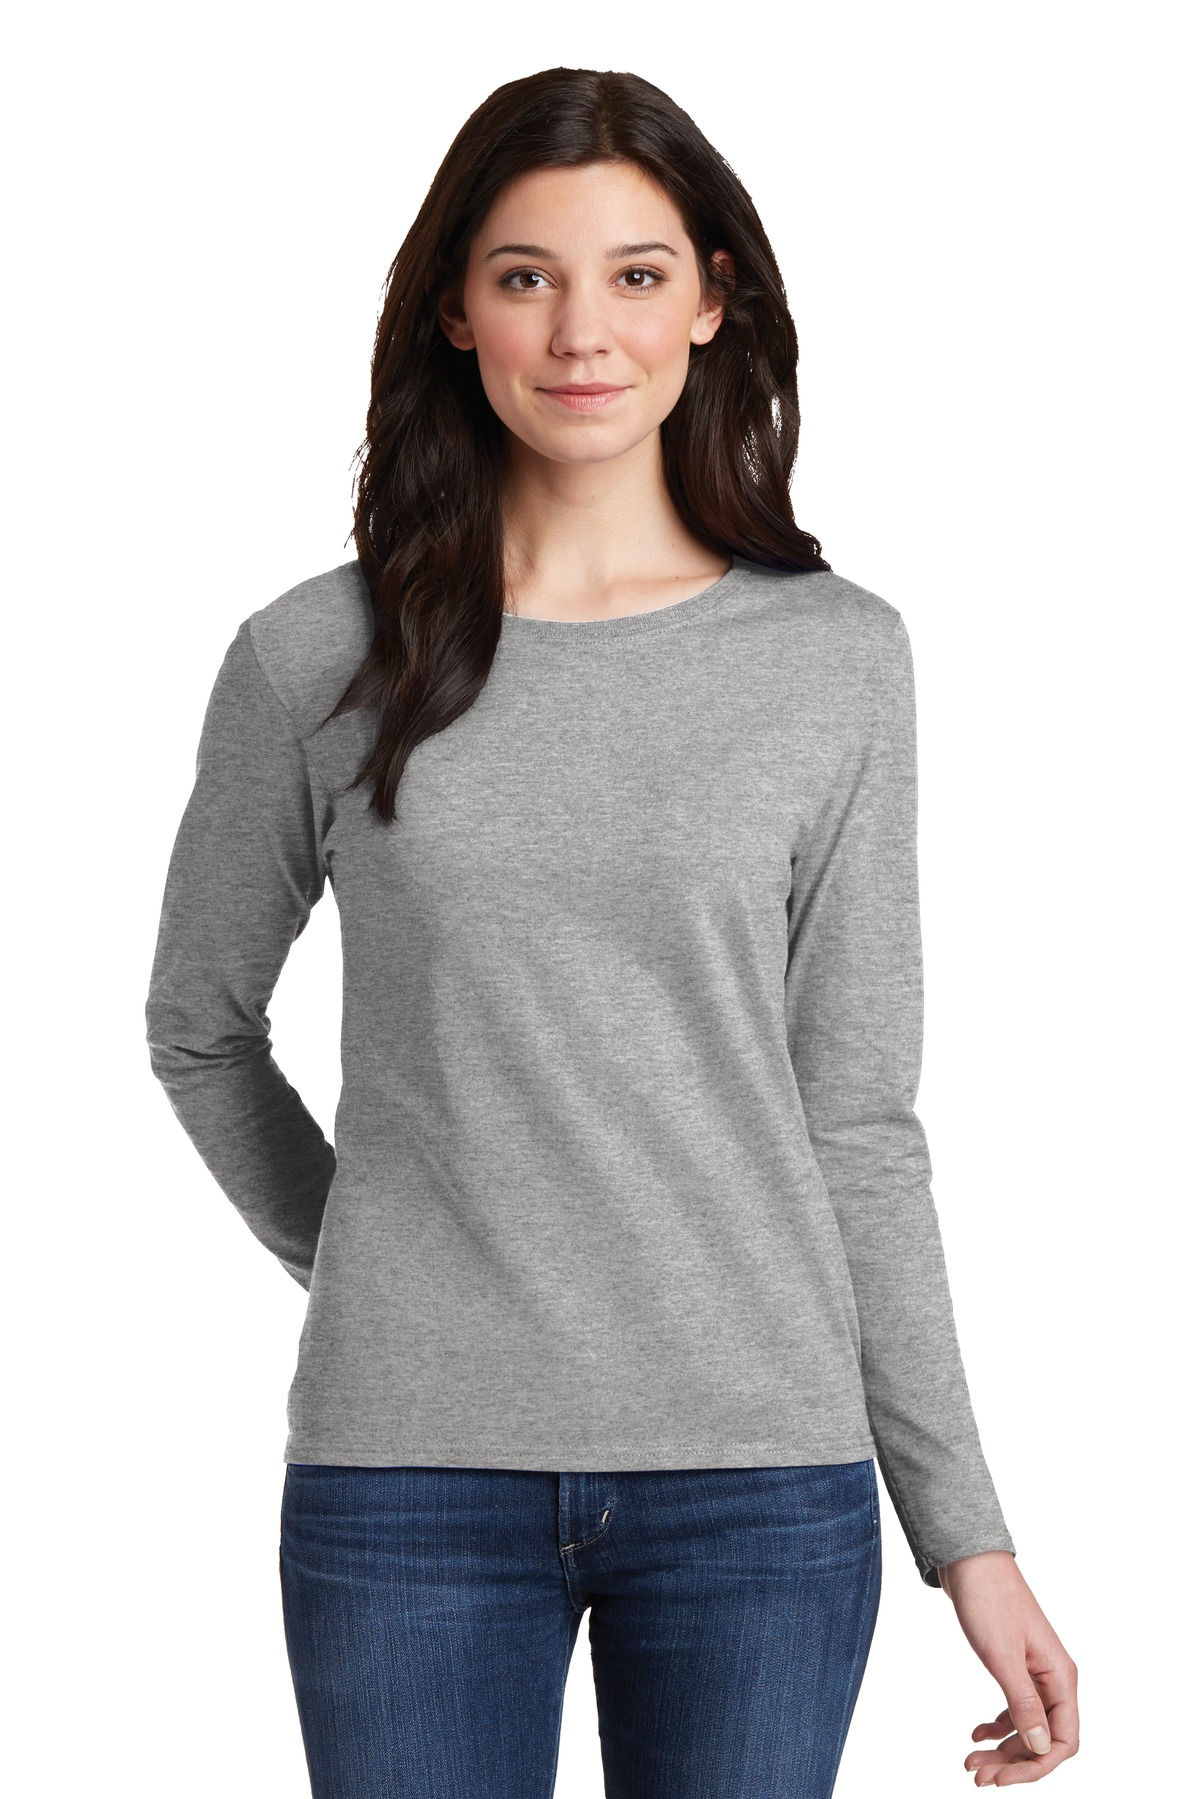 Gildan Ladies Heavy Cotton 100% Cotton Long Sleeve T-Shirt. 5400L